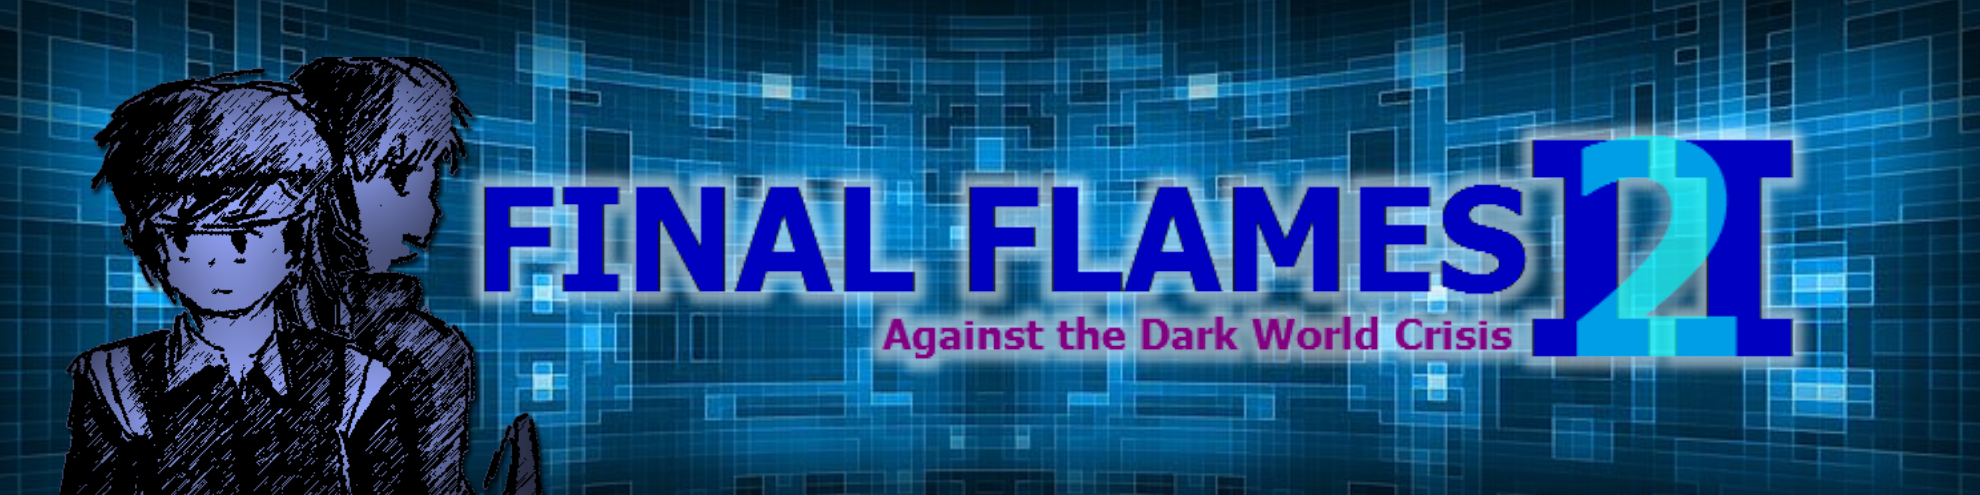 Final Flames 2: Against the Dark World Crisis